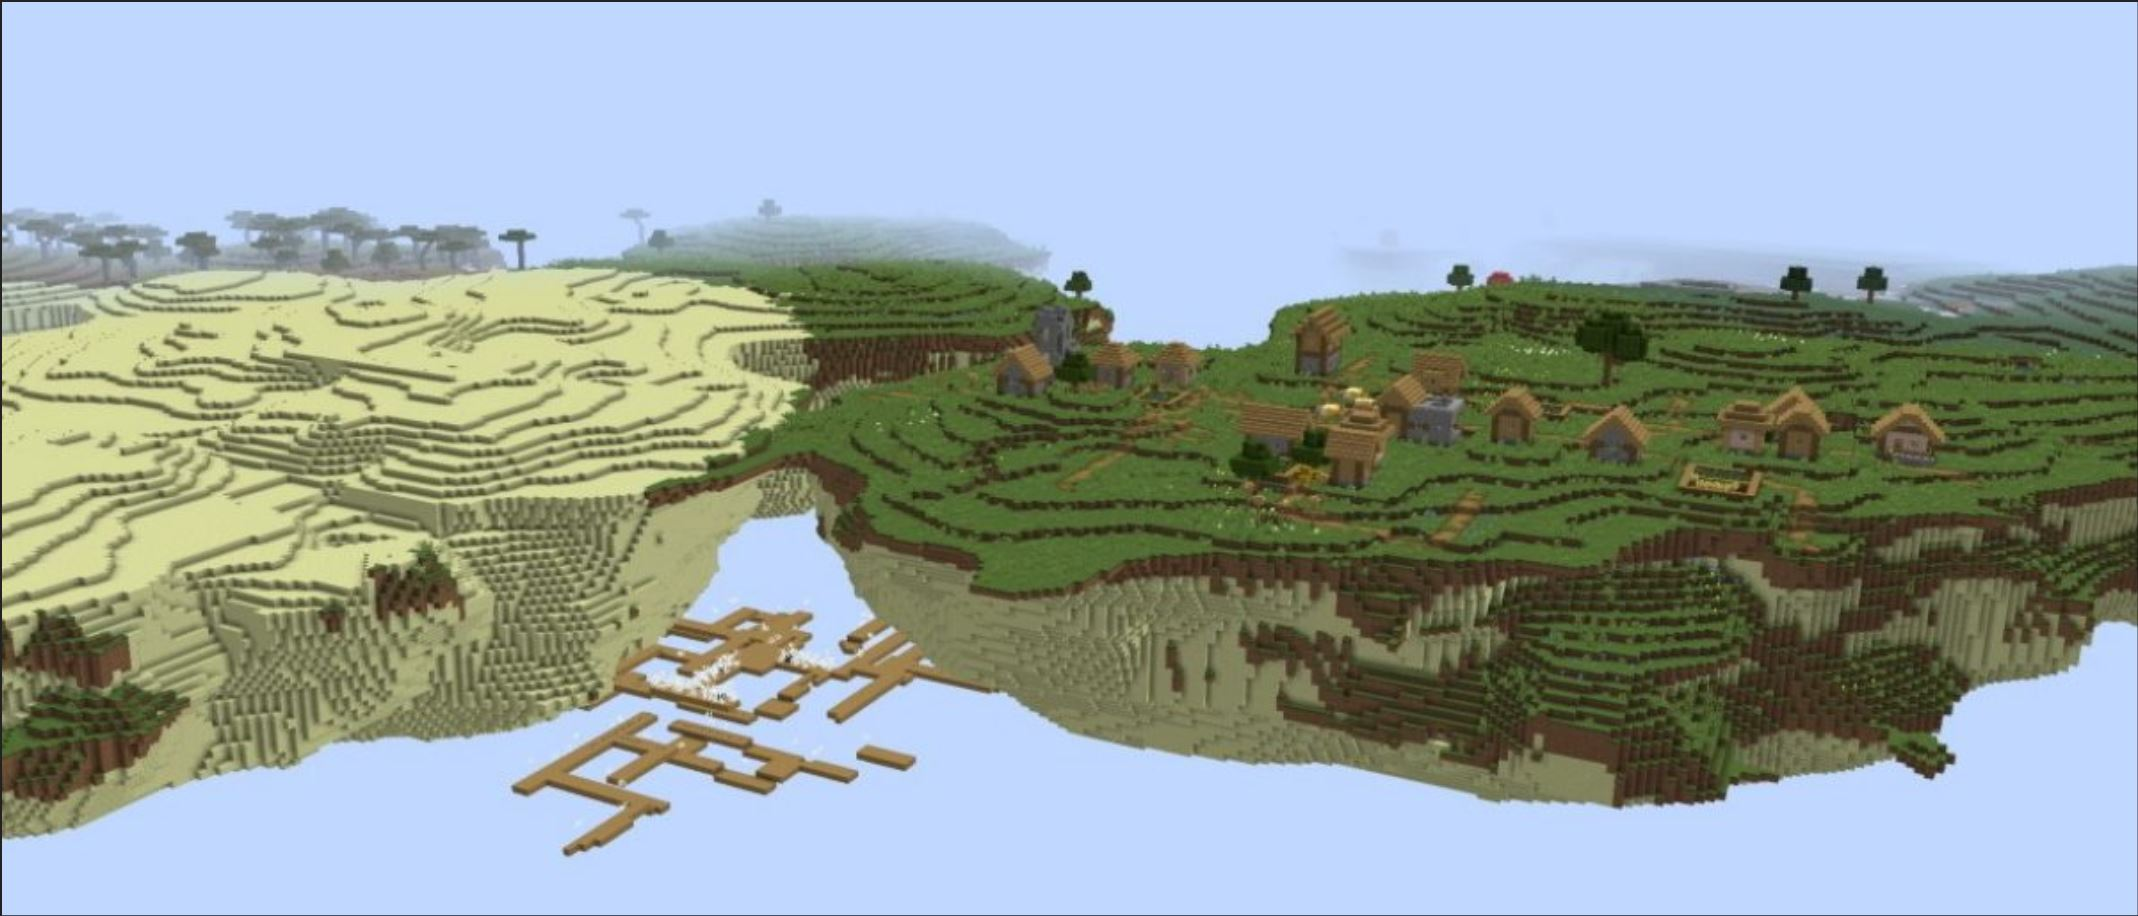 Minecraft's Snapshot 20W21A: Featuring New Settings in World Creation